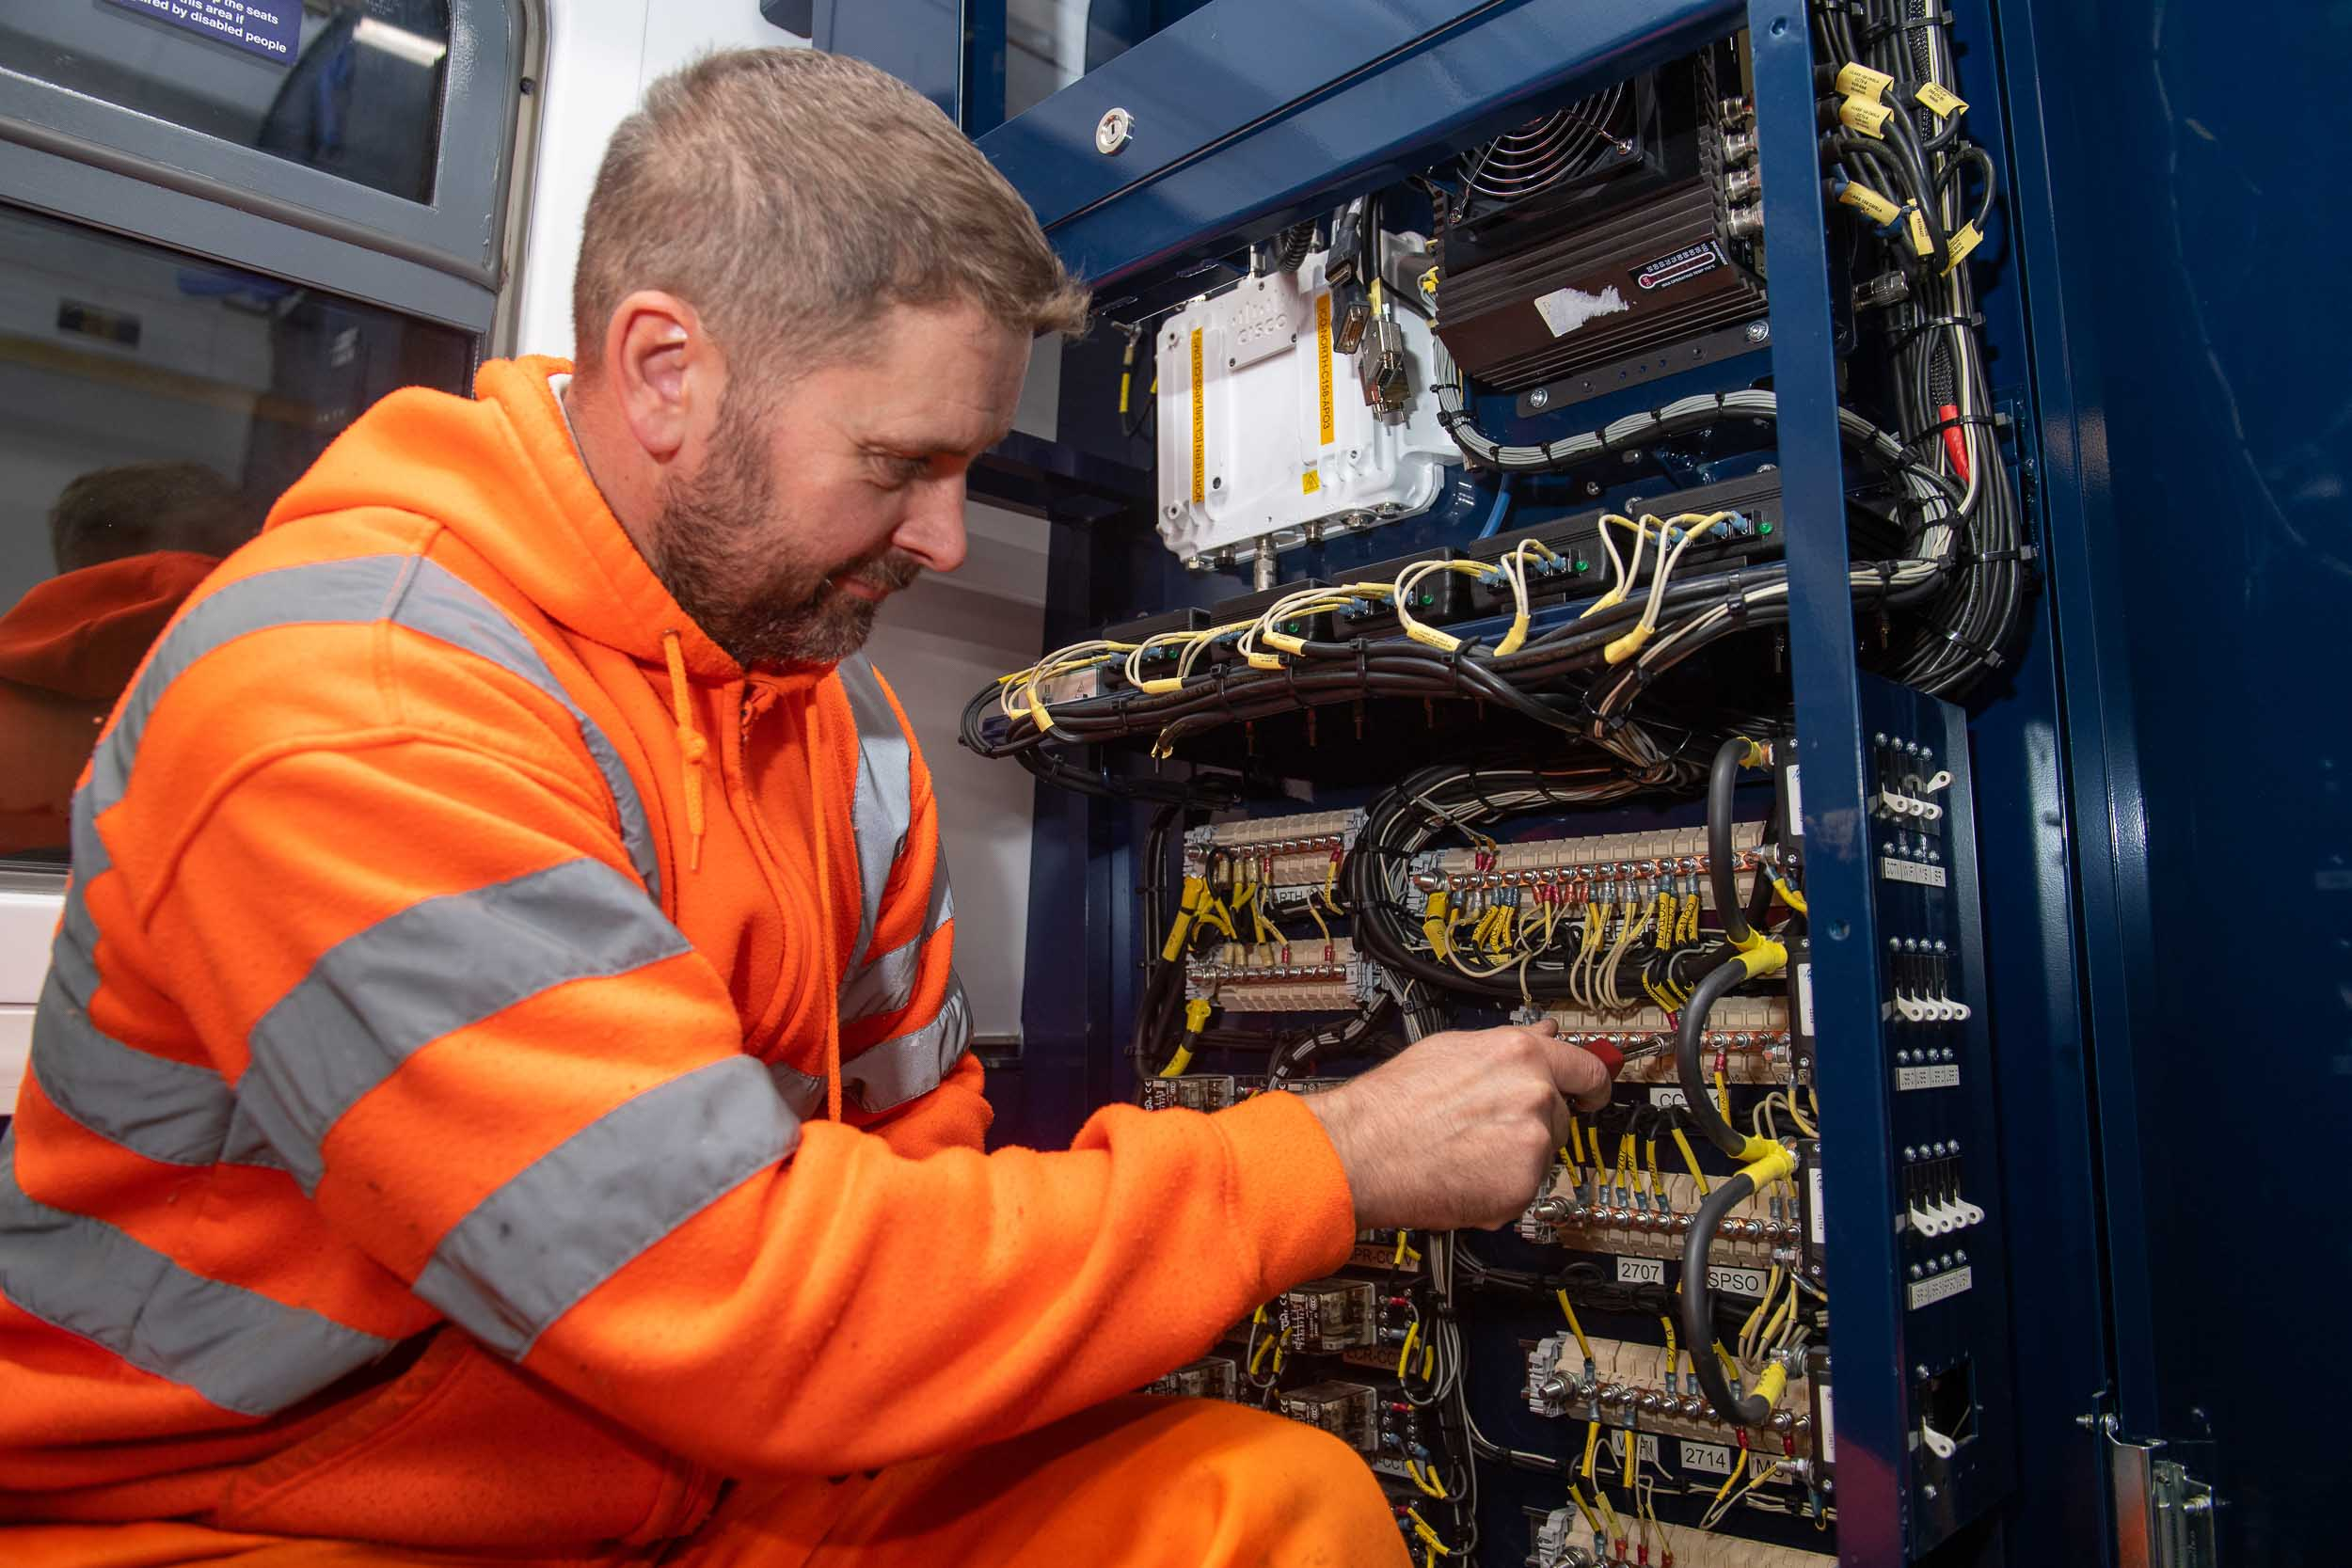 An engineer is photographed as he installs hardware to a new digital train.